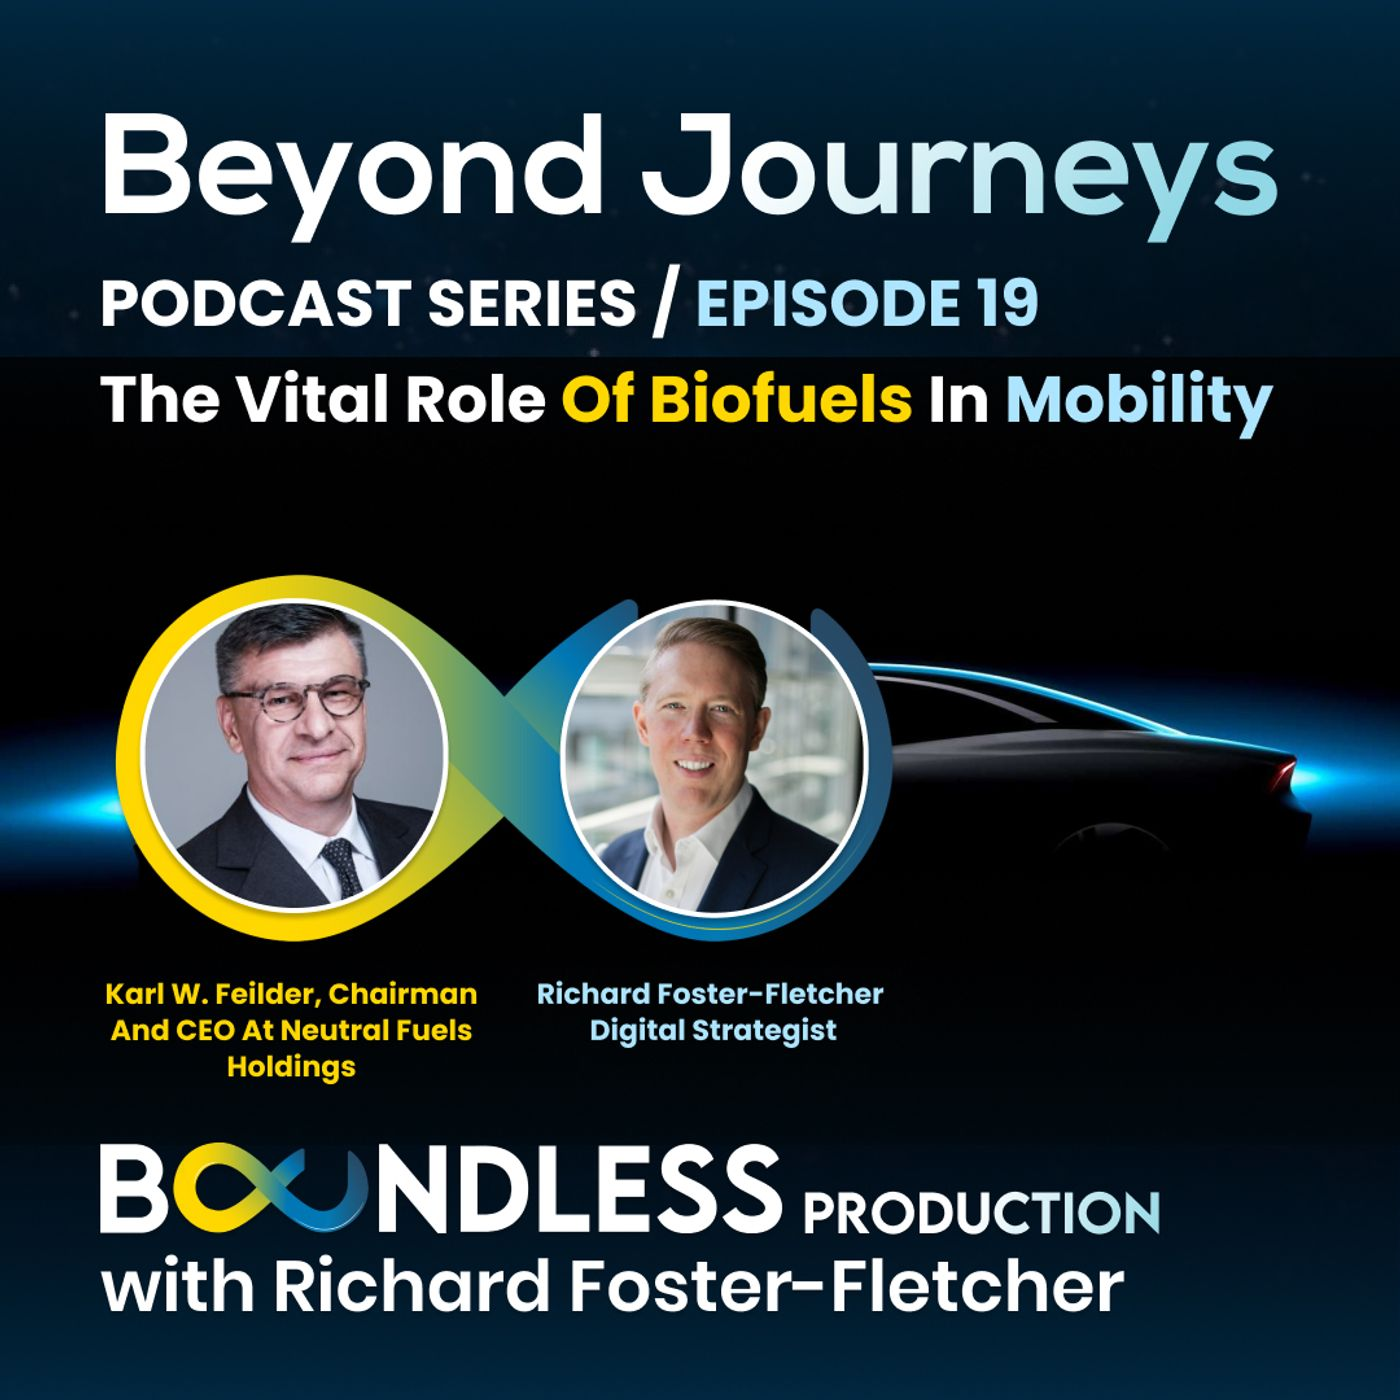 EP19 Beyond Journeys: Karl W. Feilder, CEO at Neutral Fuels Holdings - The vital role of biofuels in mobility